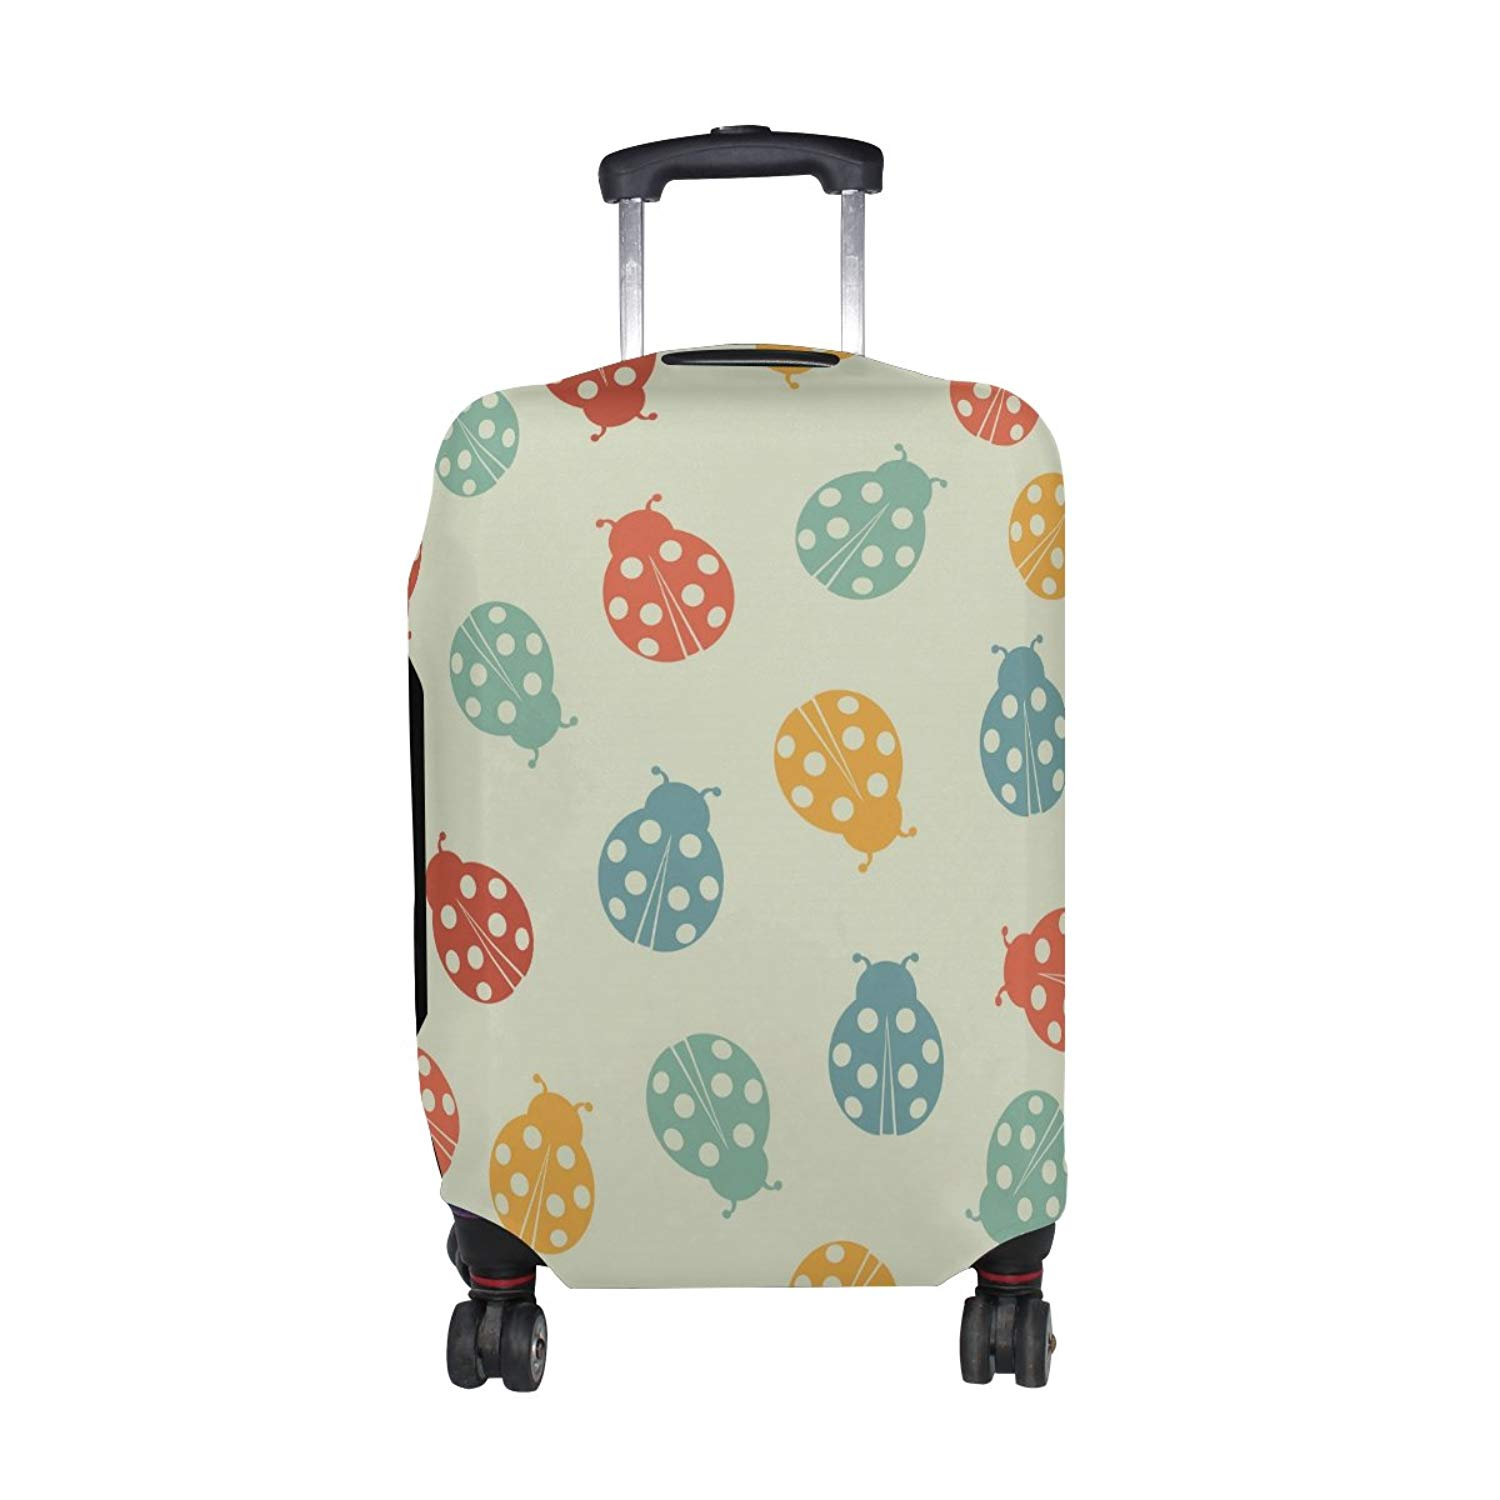 Fashion Travel Hong Kong Retro Pandas Luggage Suitcase Protector Washable Baggage Covers